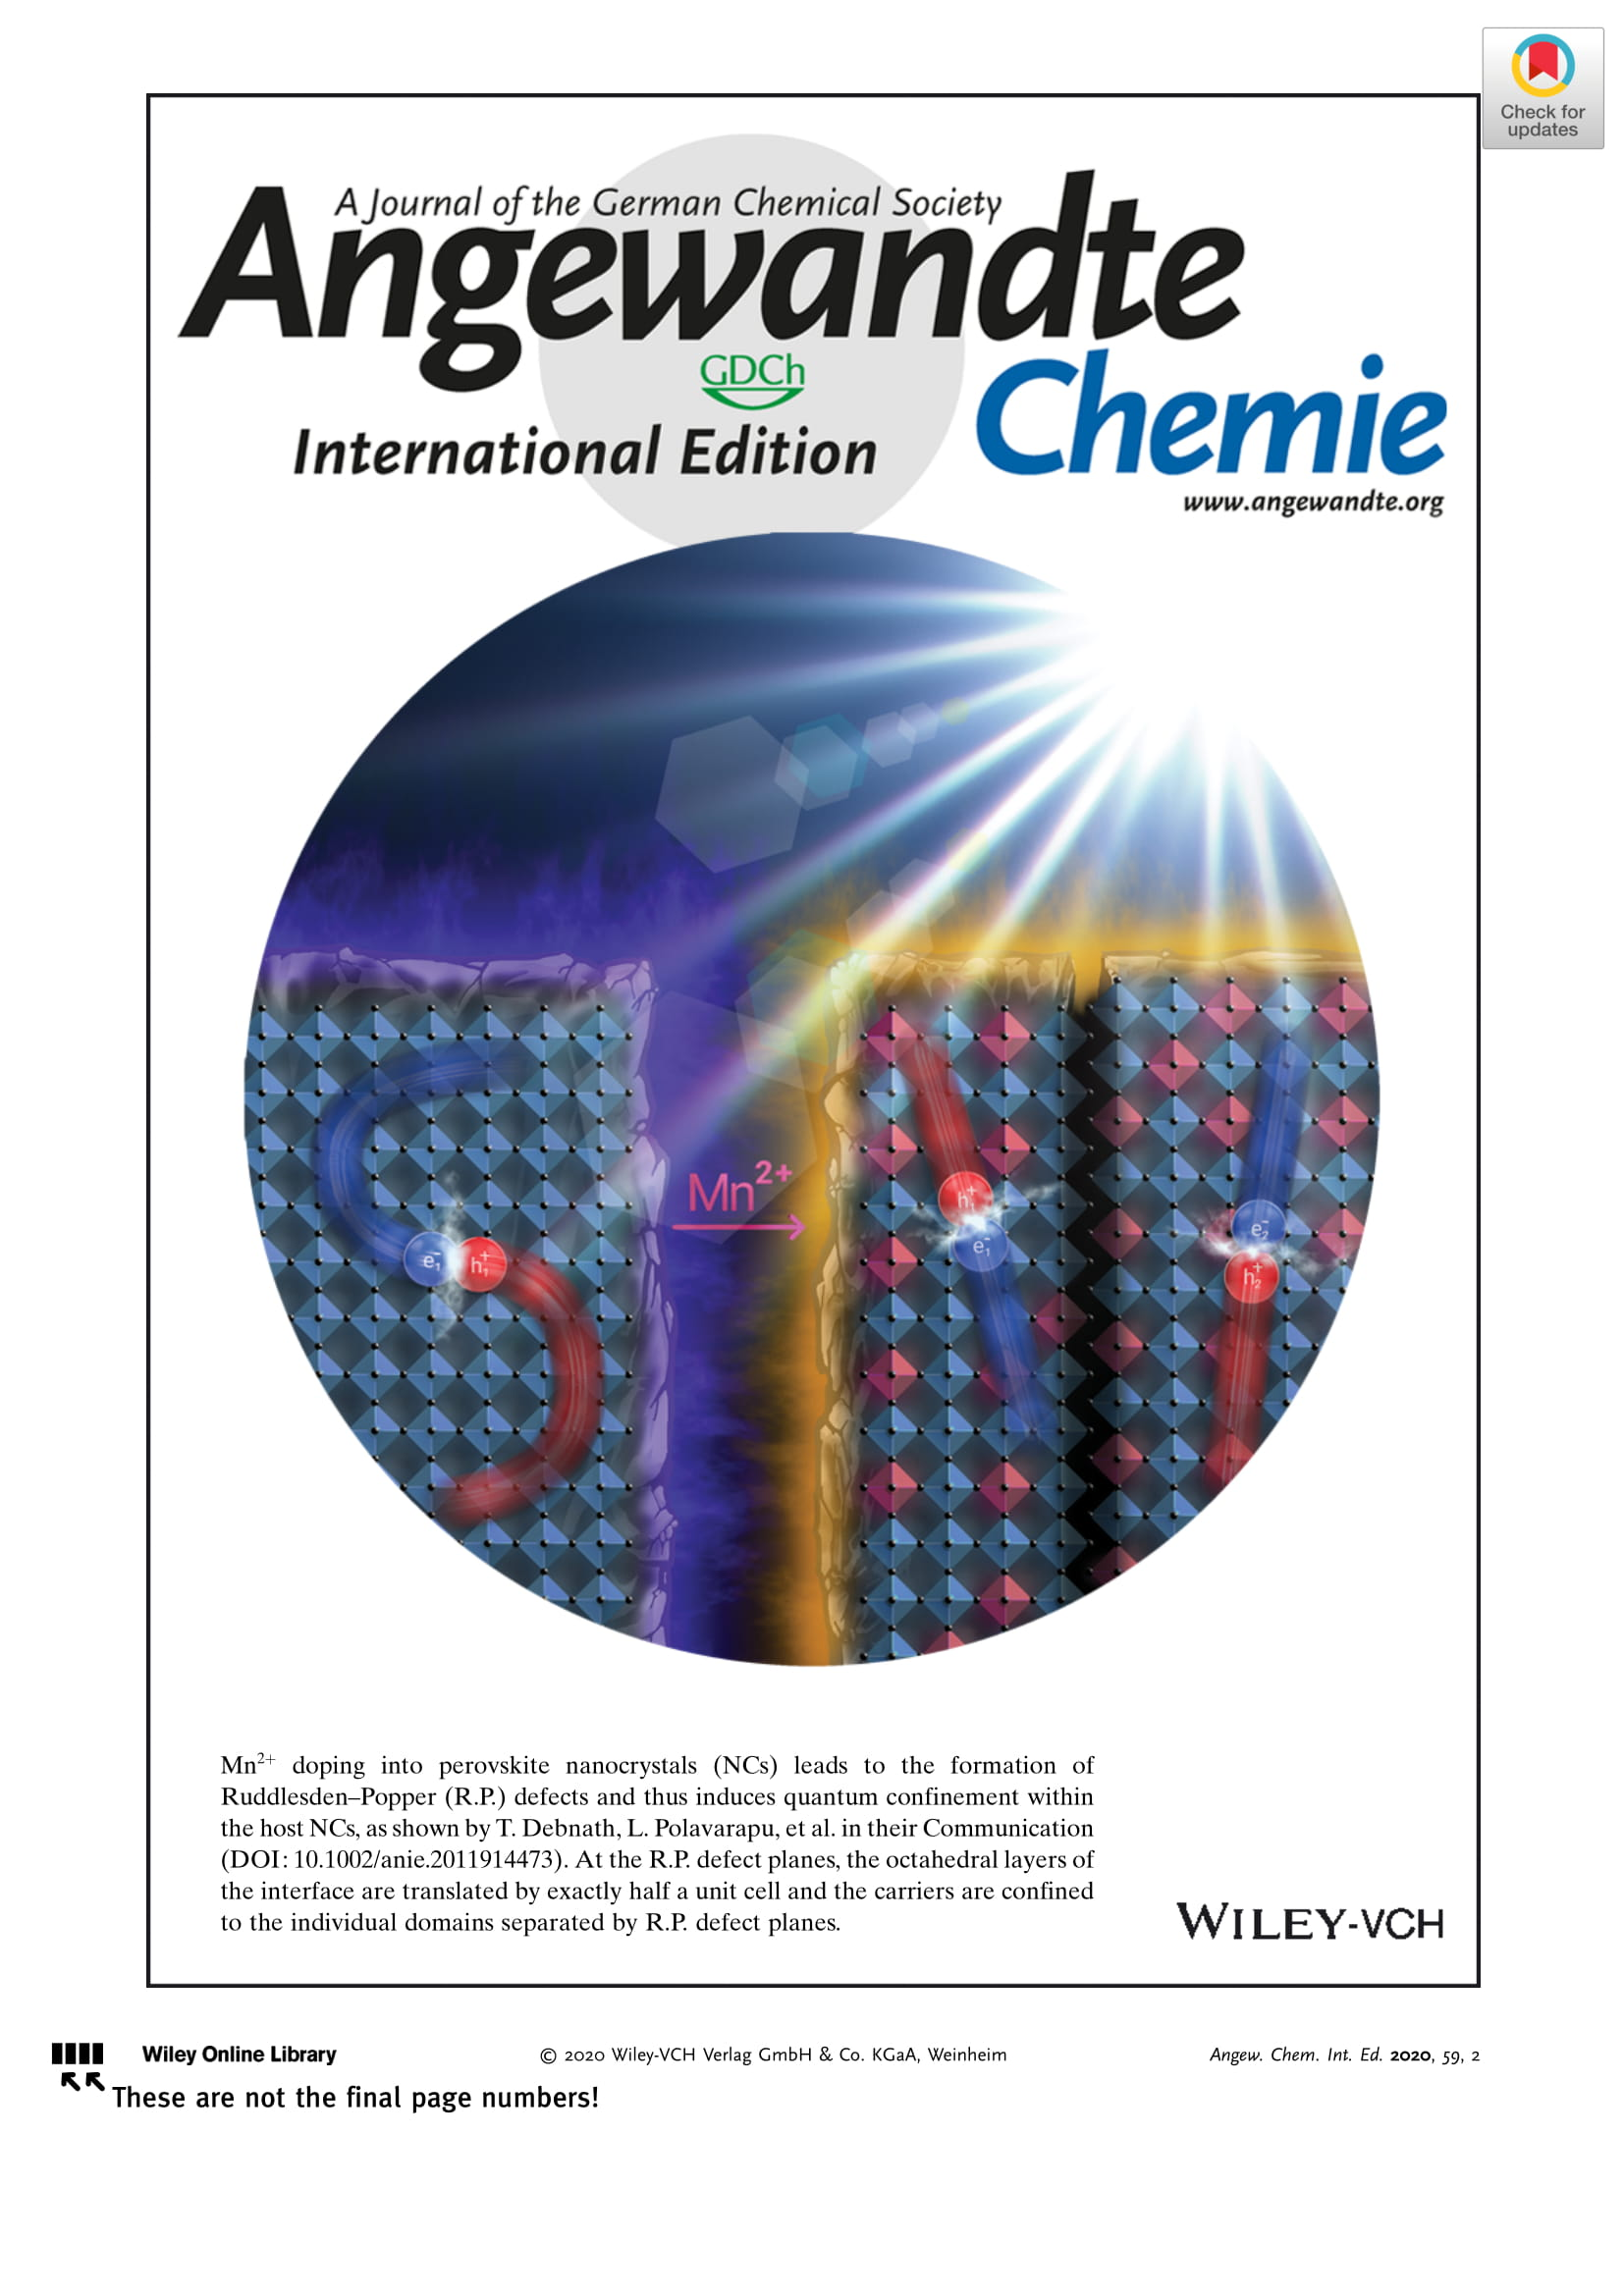 New cover image in Angewandte Chemie International Edition